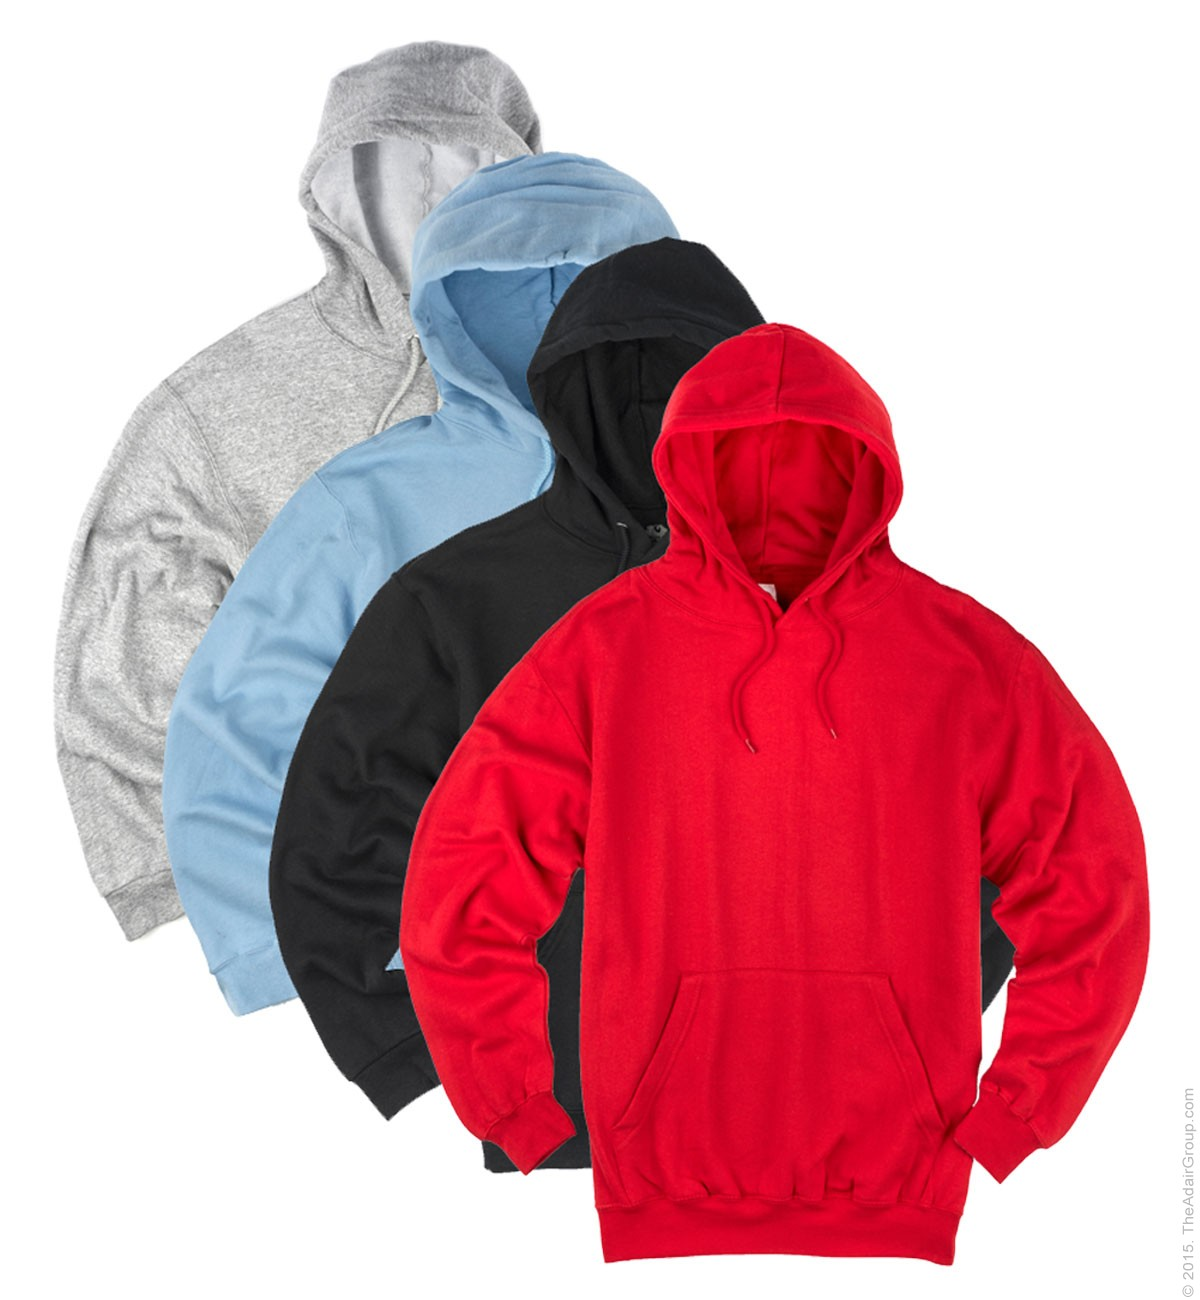 Where To Buy Plain Red Sweatshirts - Cotswold Hire fafa106d58e4